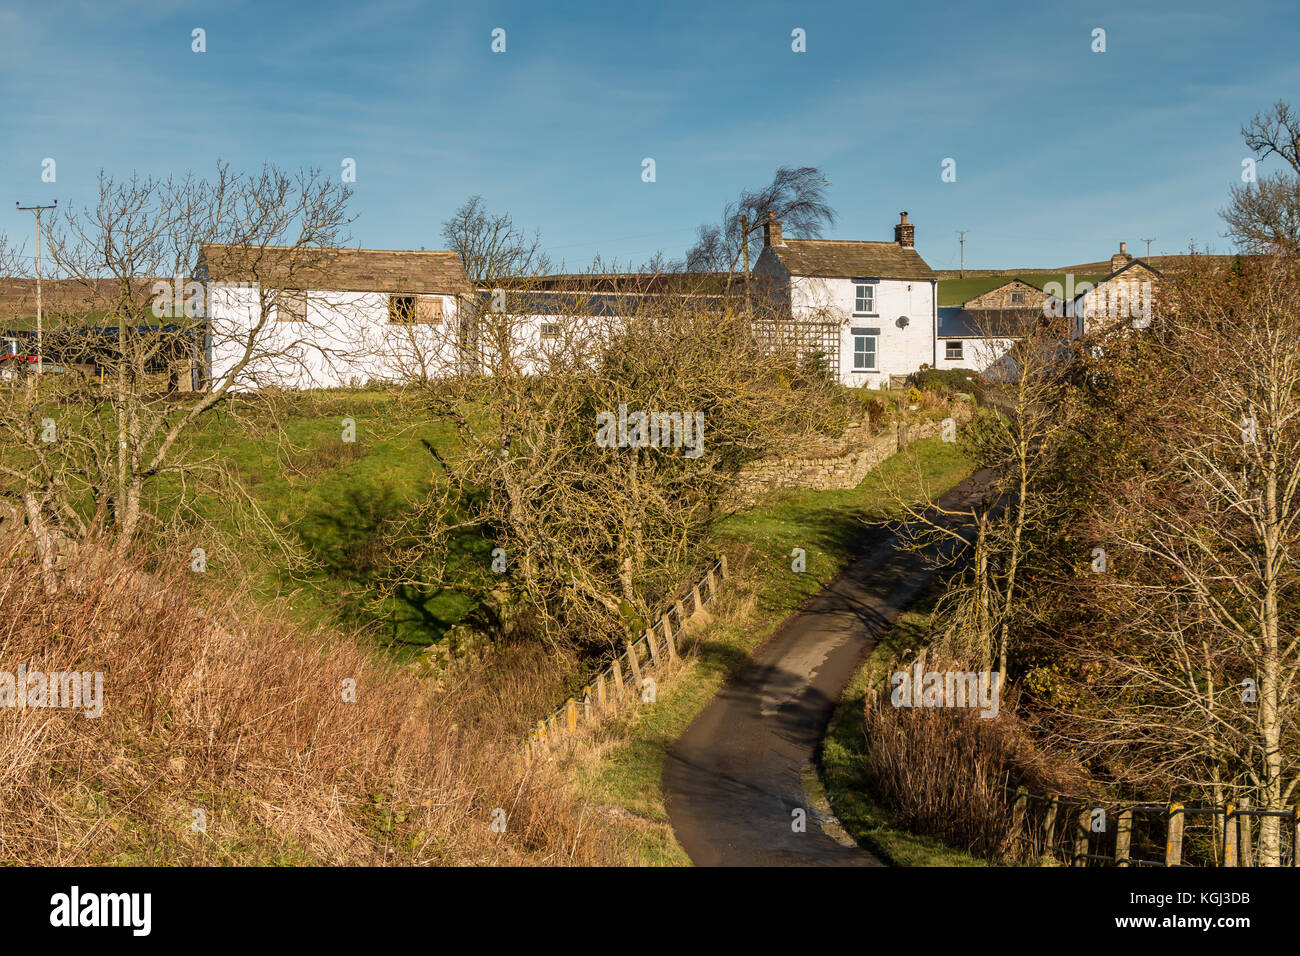 UK Hill Farm, Bank Top Farm, Ettersgill, Upper Teesdale in strong autumn sunshine under a clear blue sky November - Stock Image